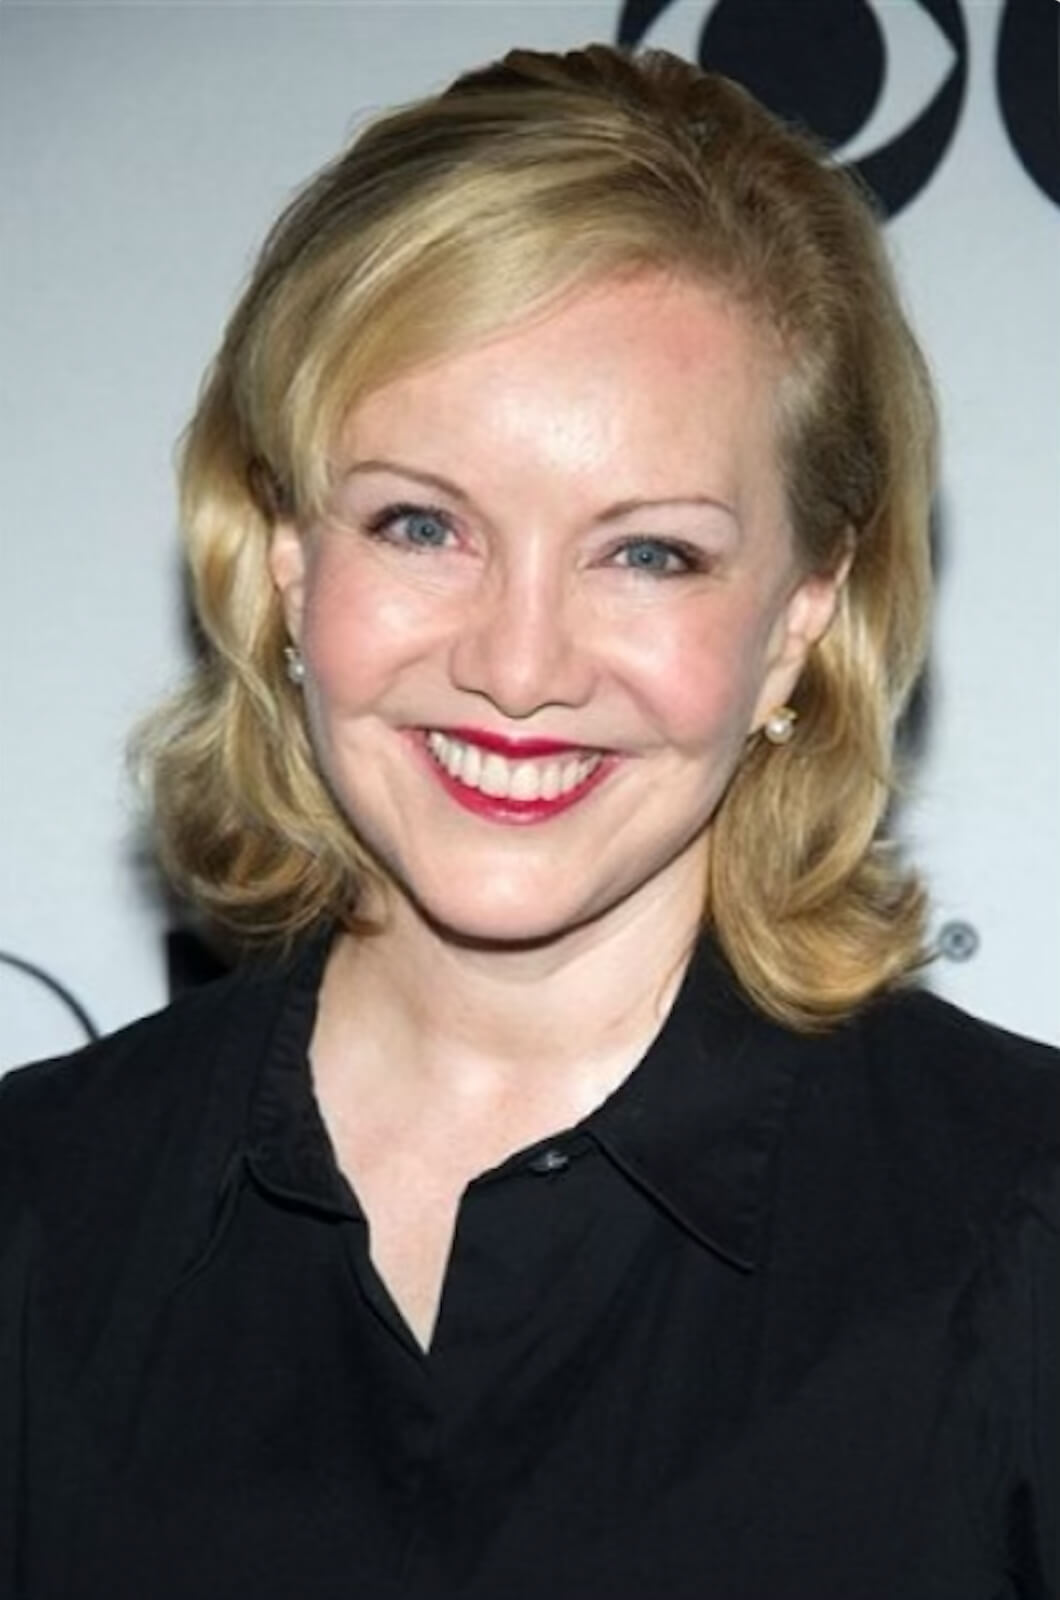 Headshot of Susan Stroman in front of the CBS step and repeat.